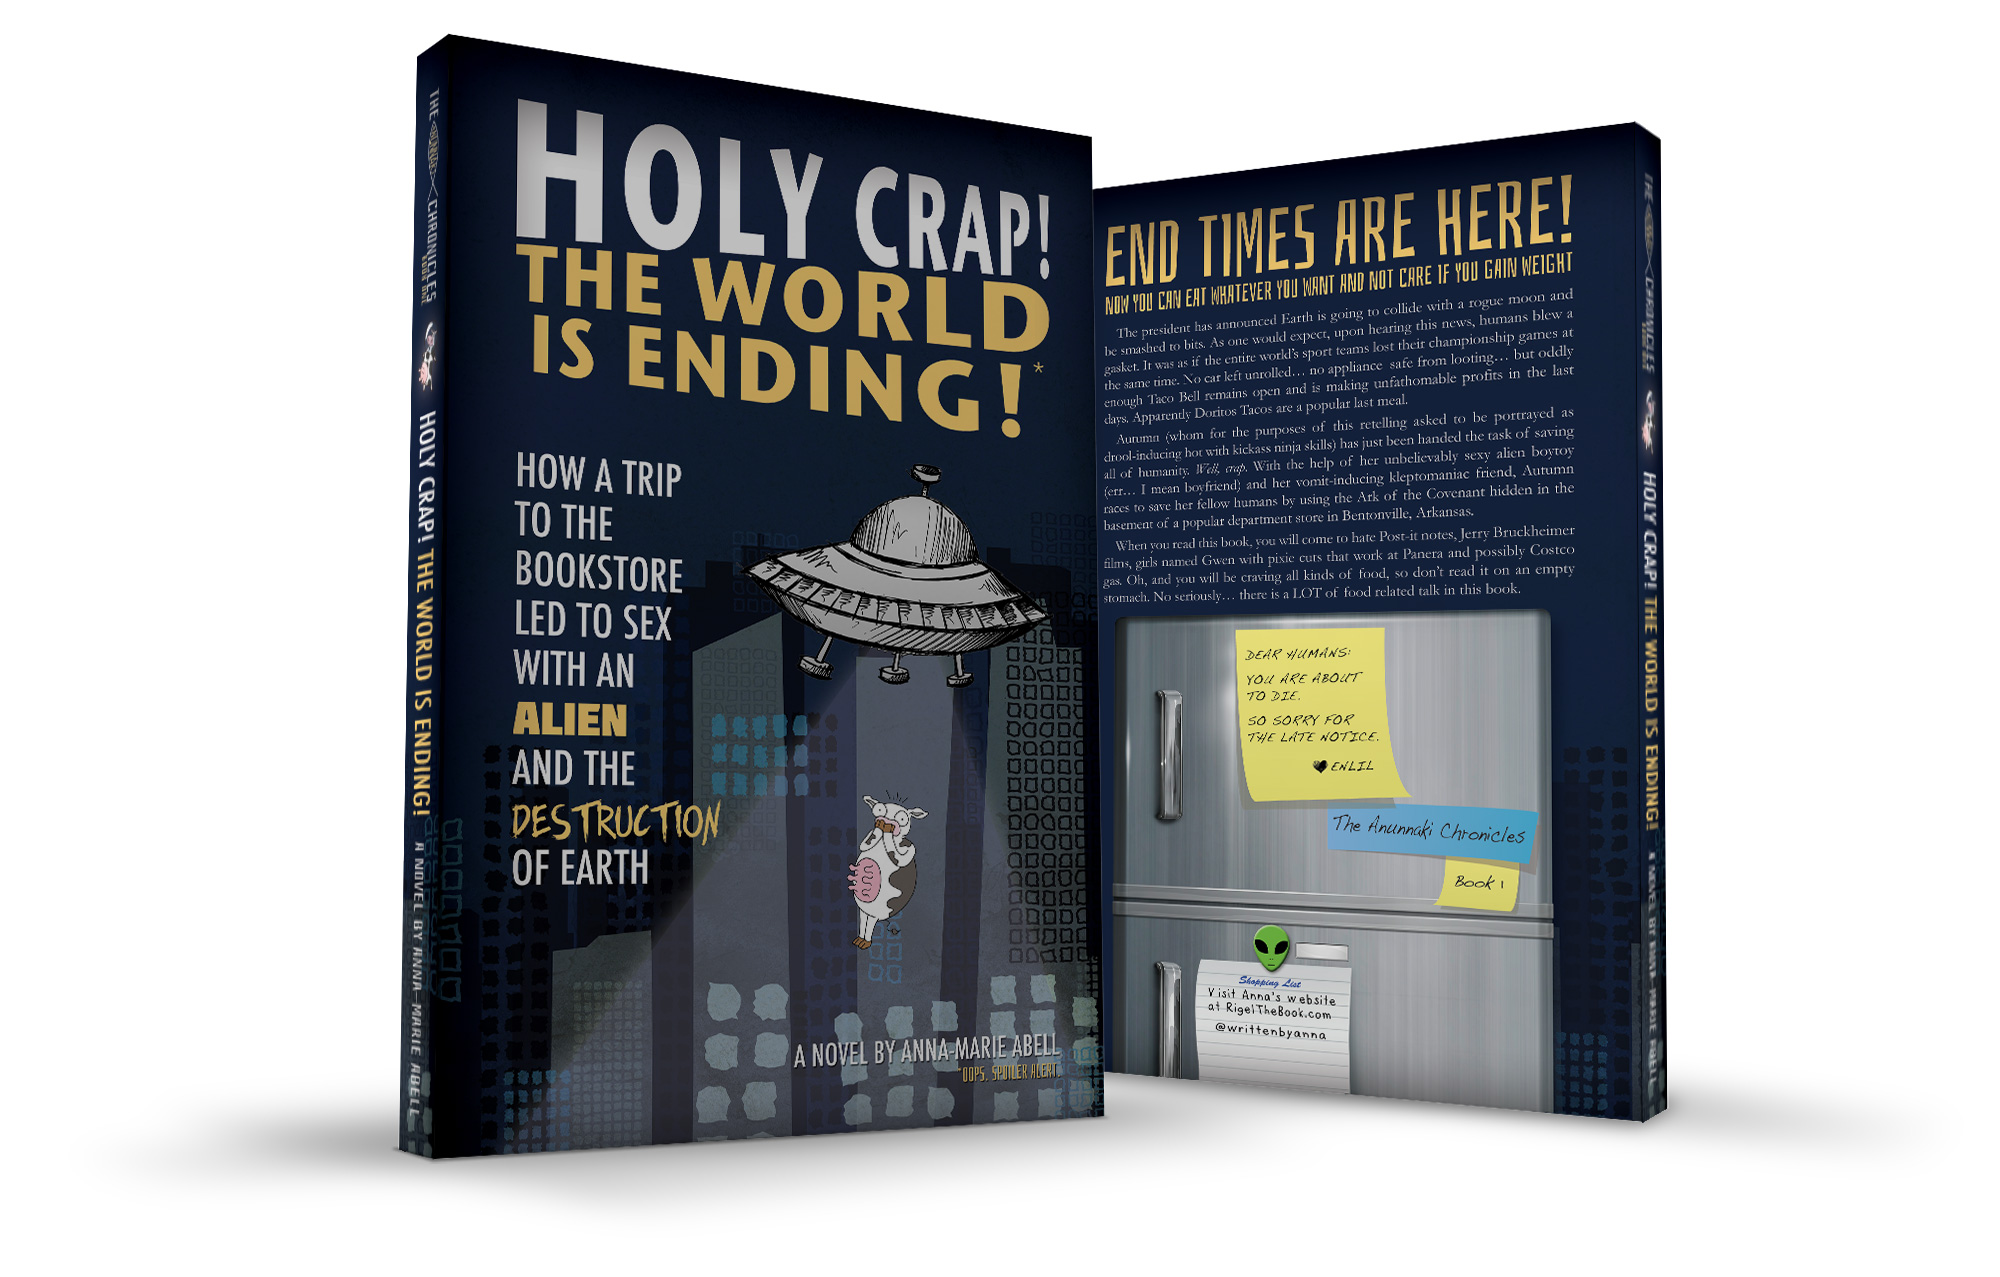 Holy Crap! The World is Ending - Book Mockup - Written By Anna